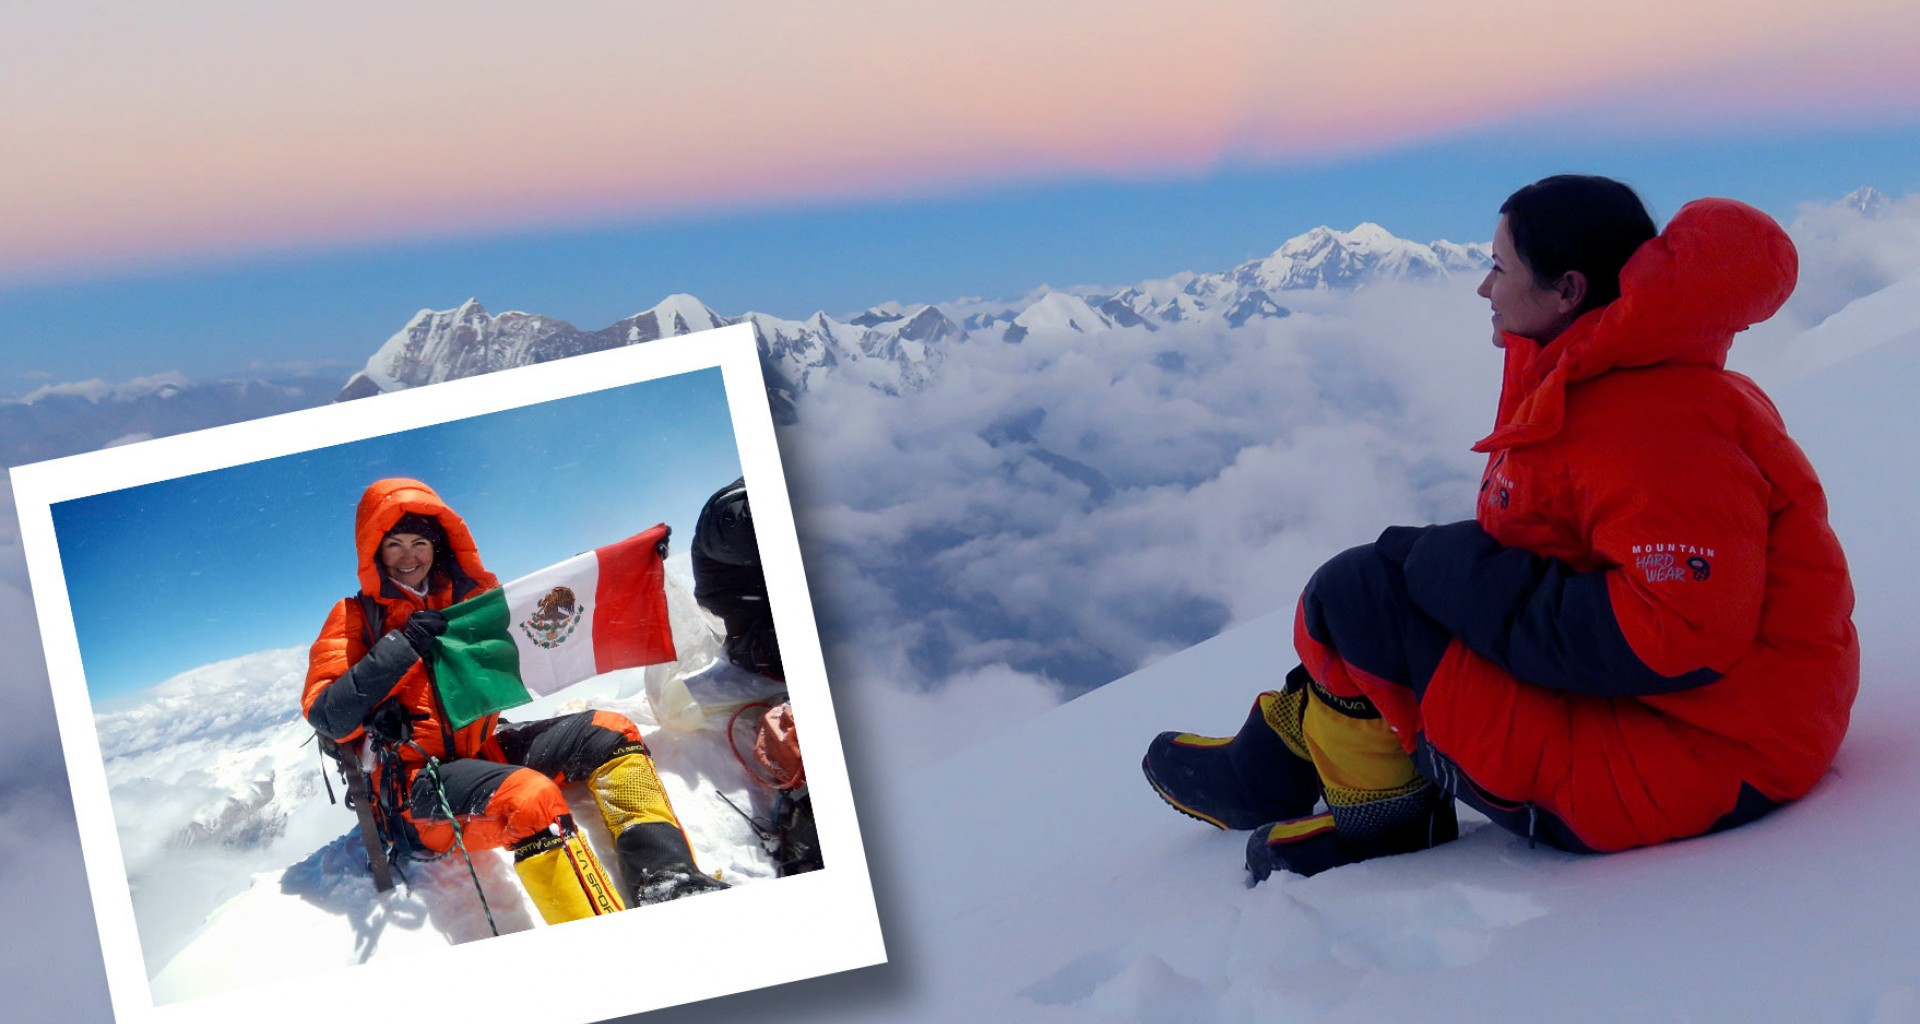 From here to the top! She climbed the highest mountains in the world